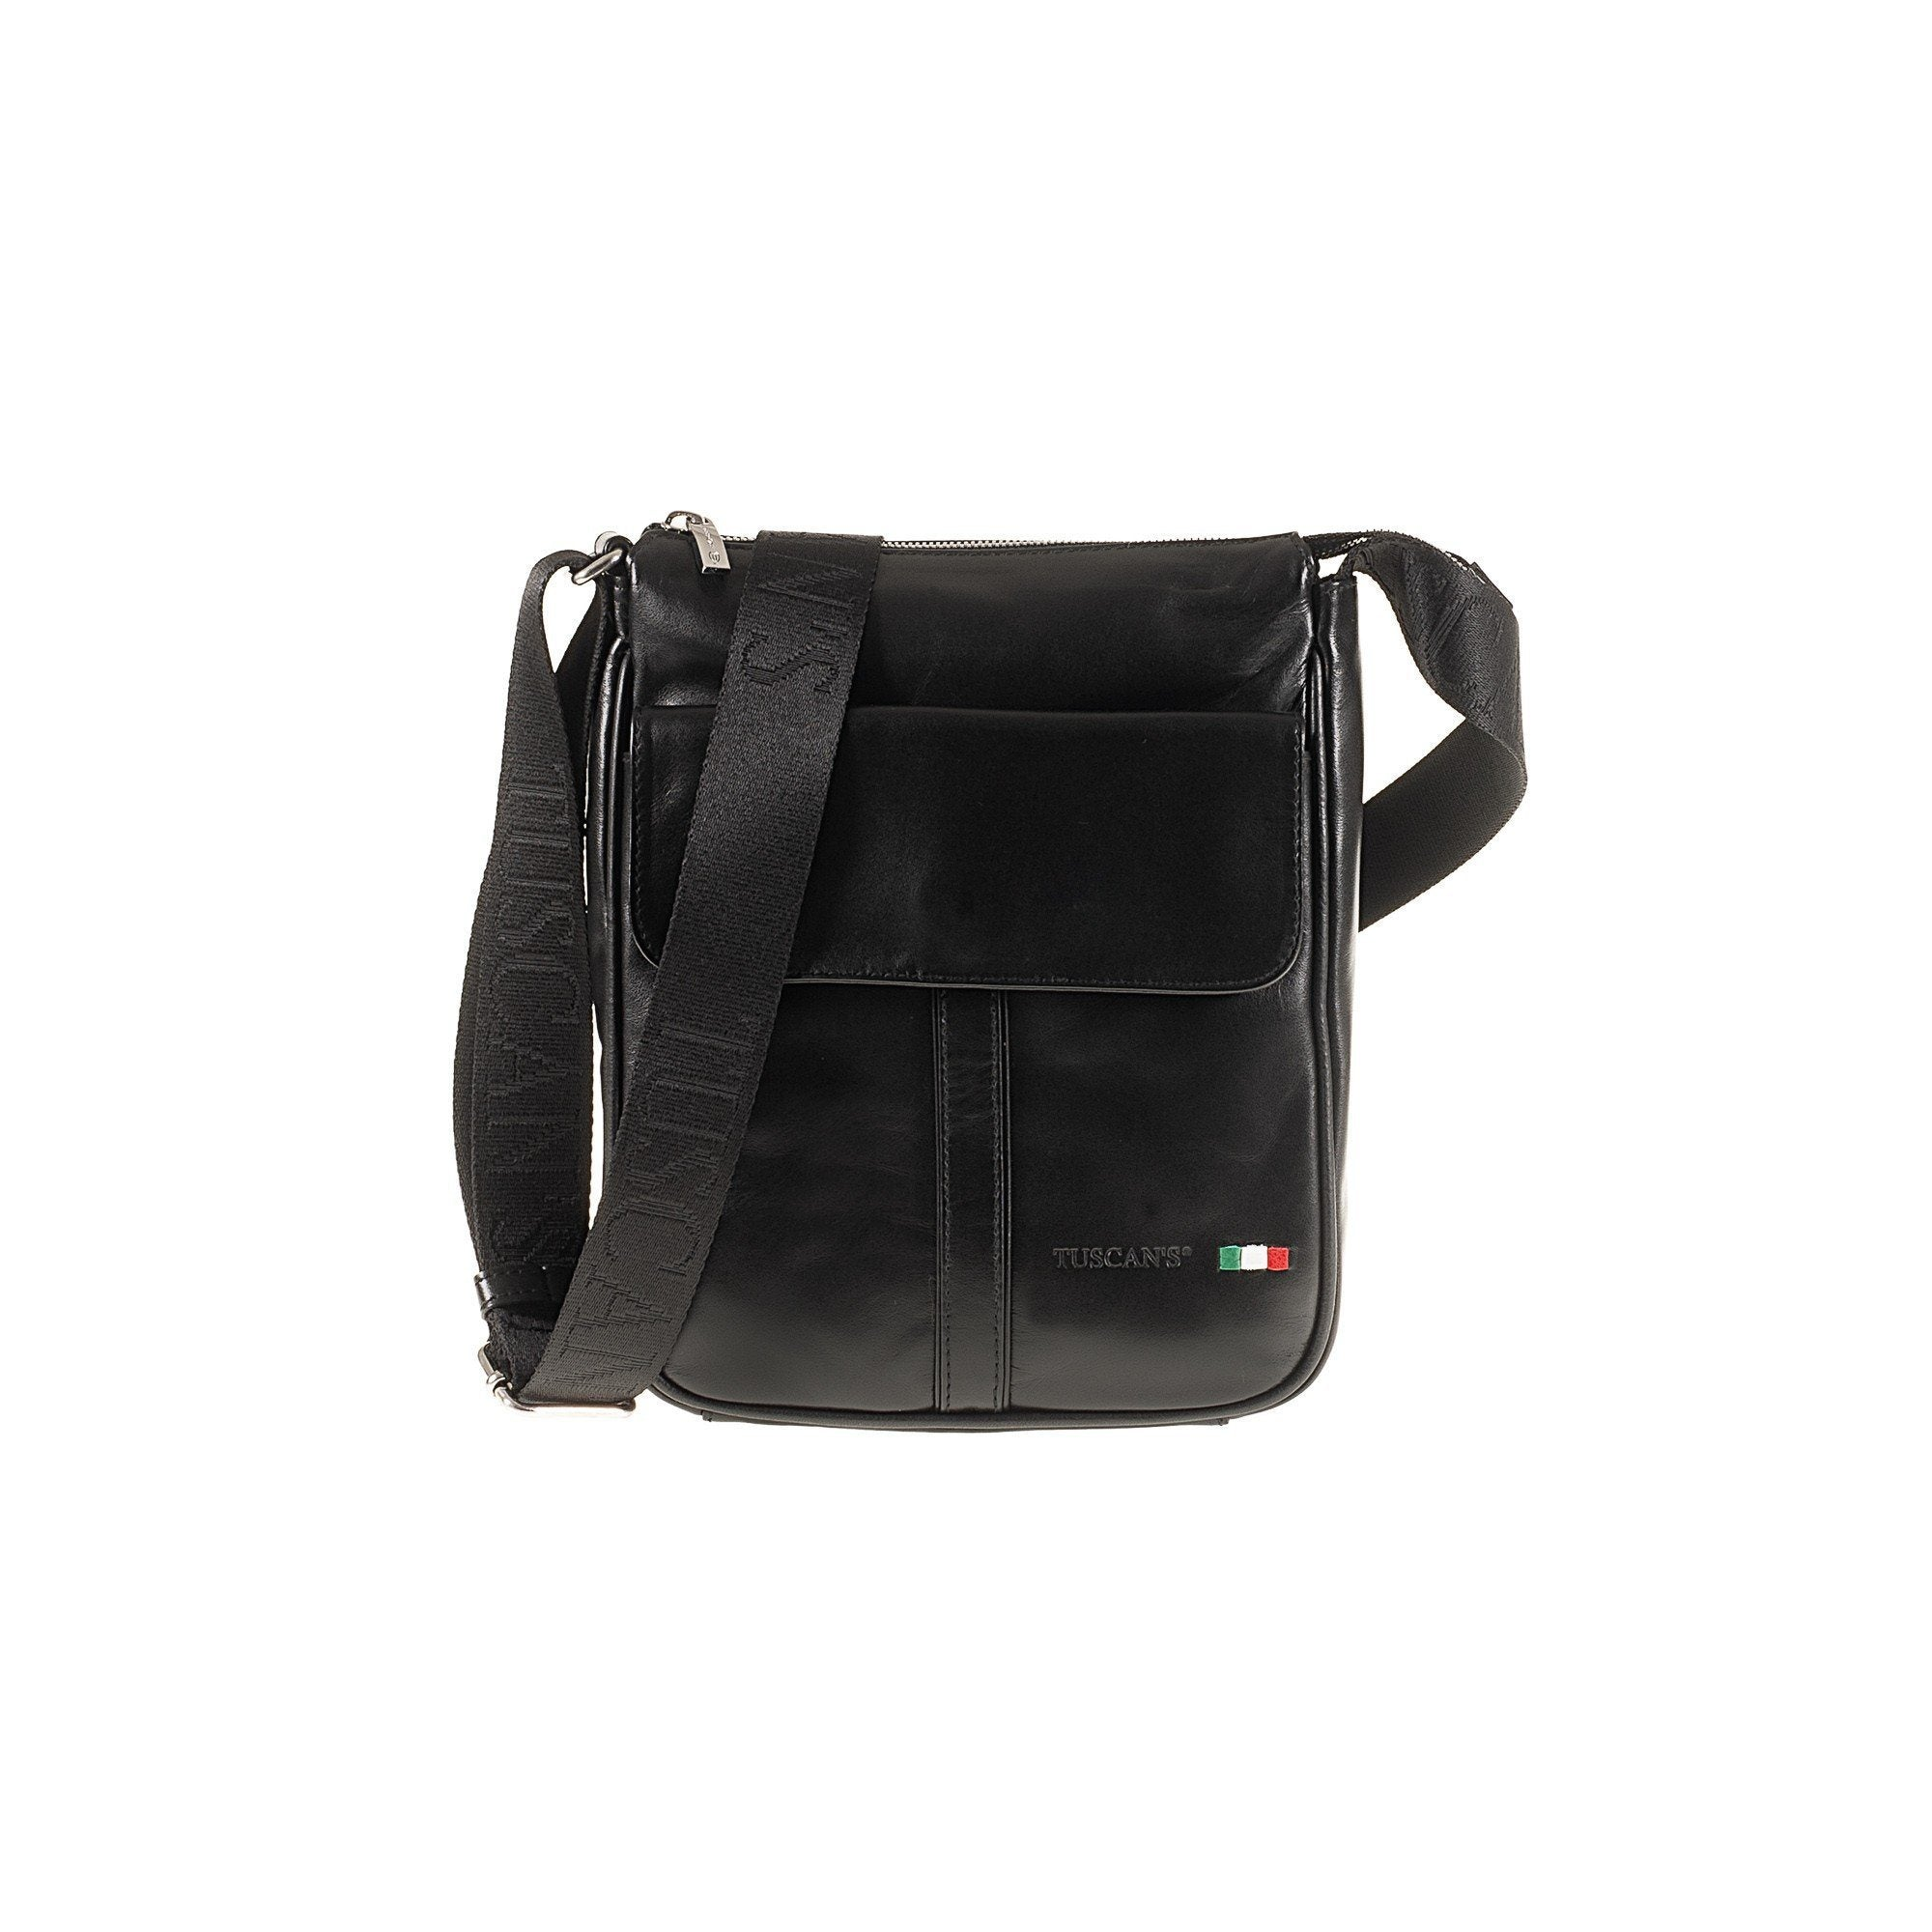 Tuscans 'Algol' Men's Leather Messenger Bag Messenger Bag Tuscans Black